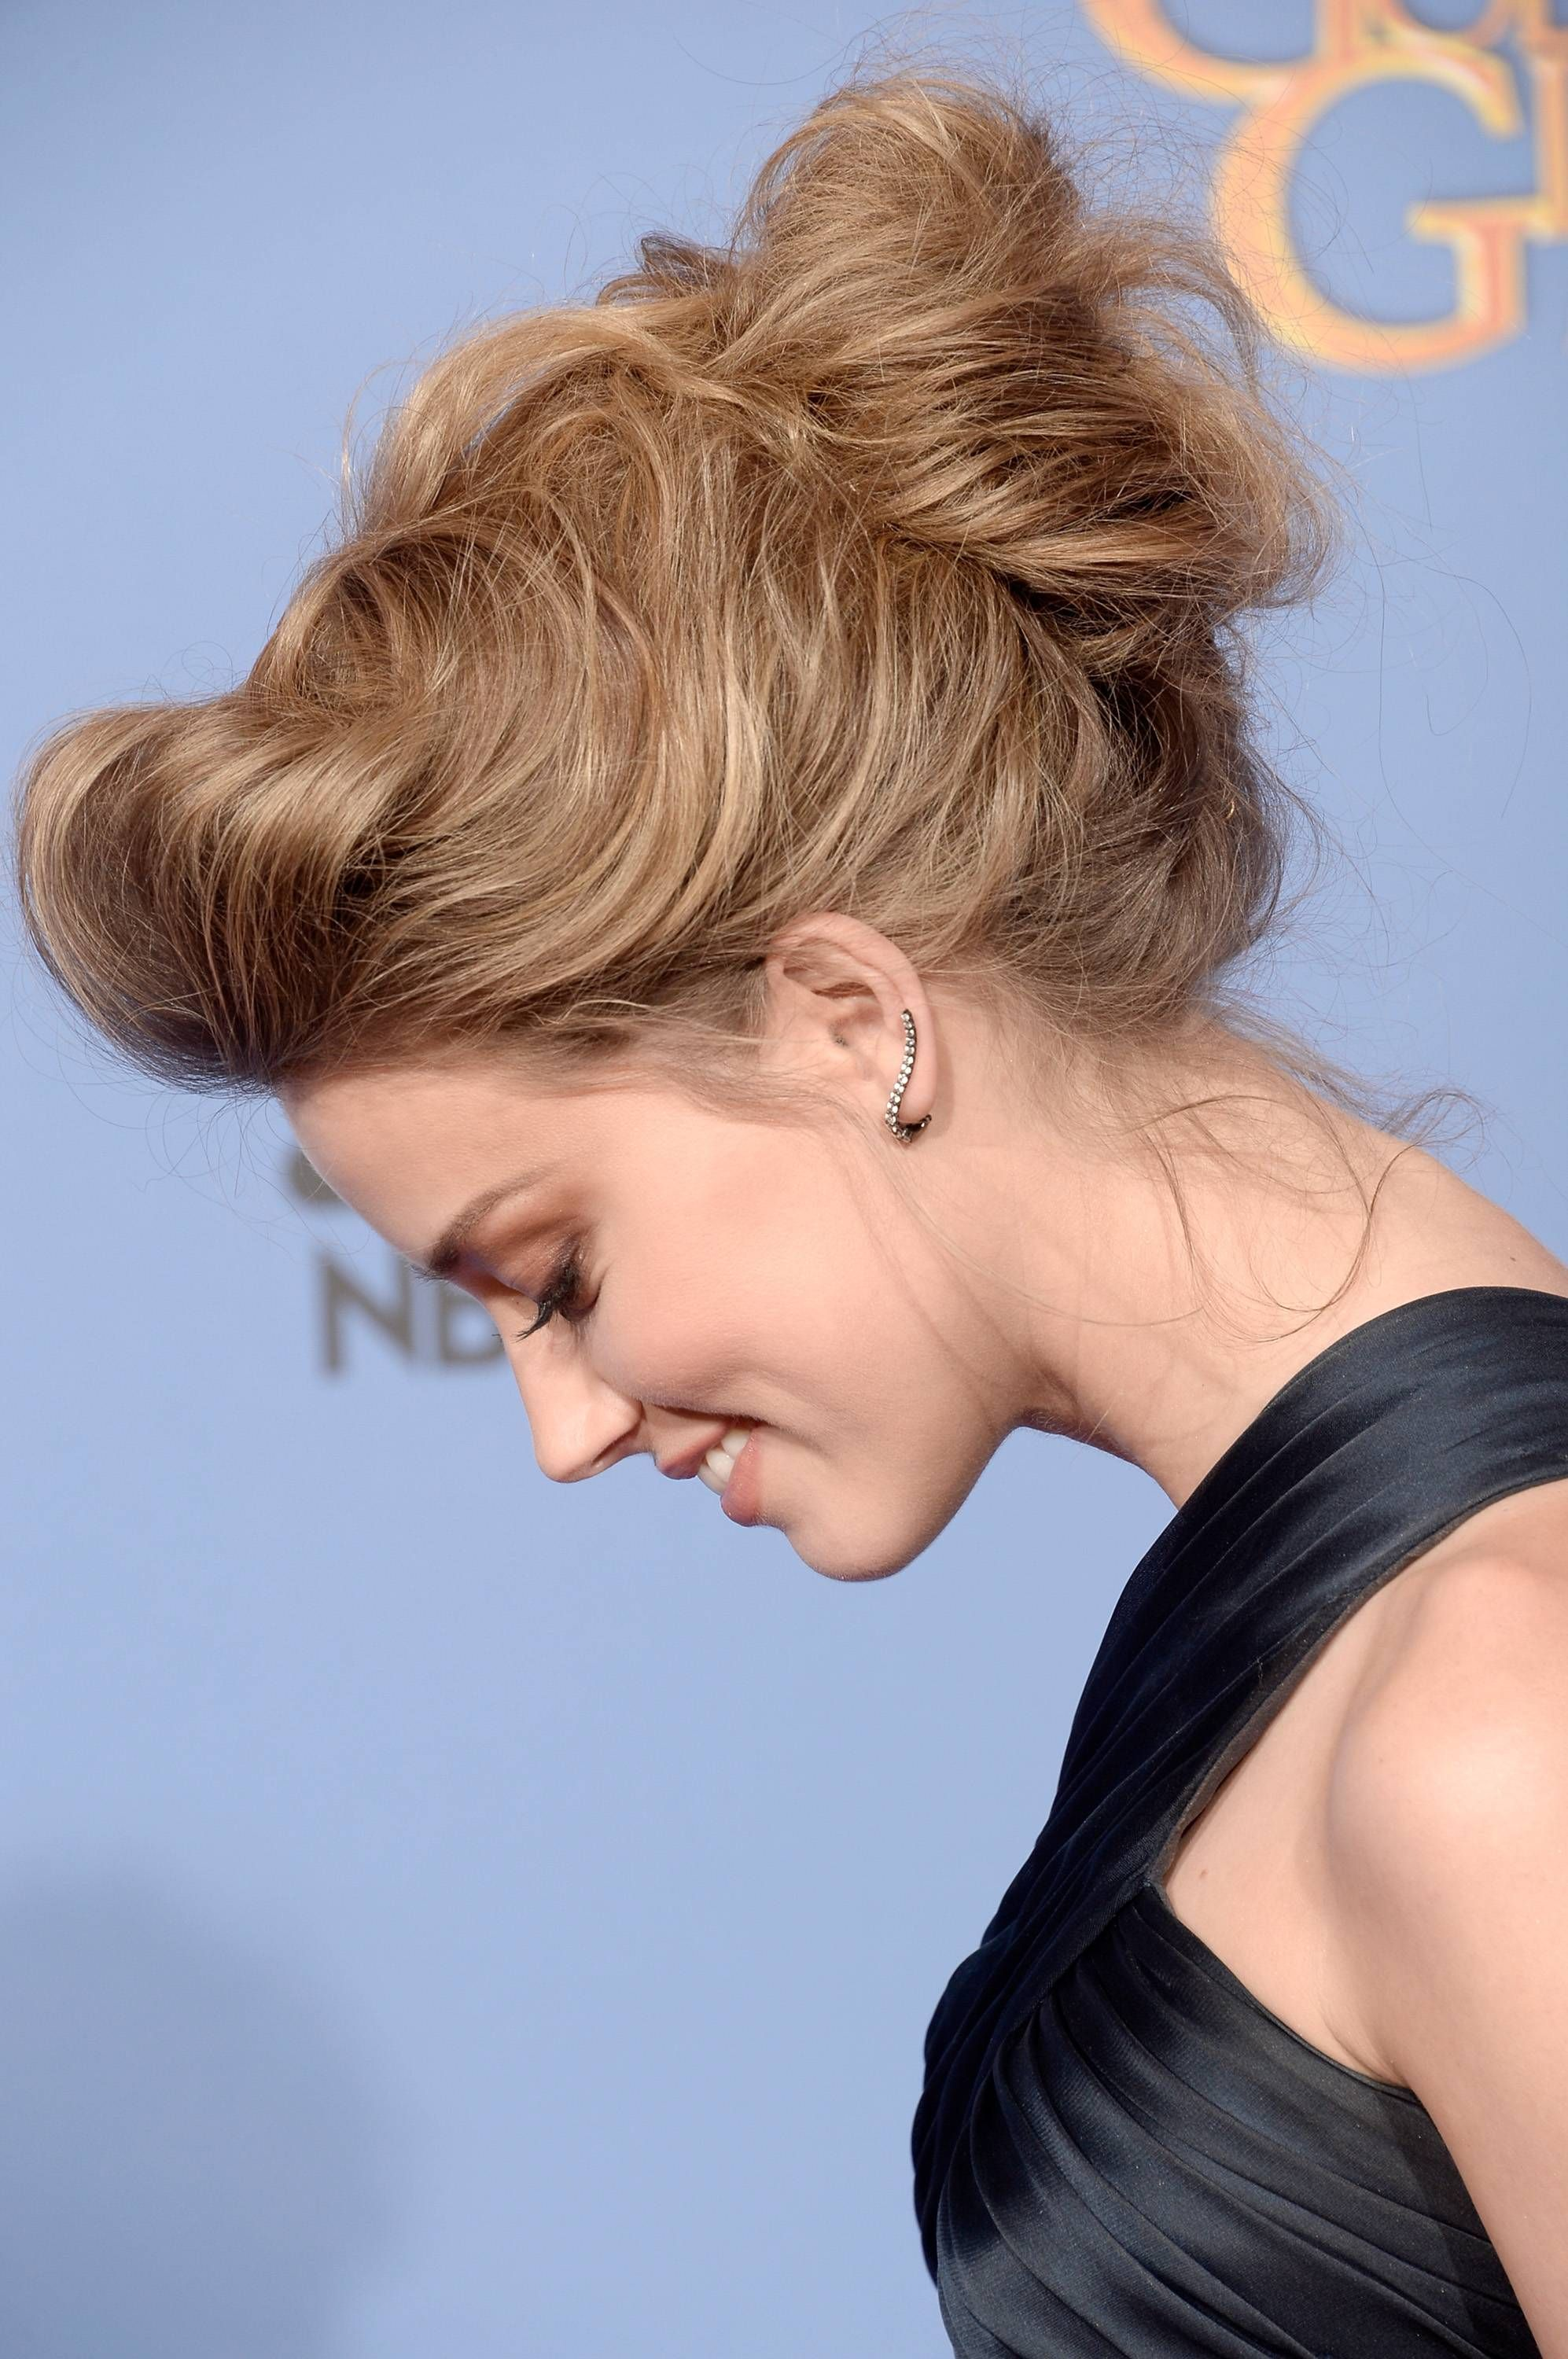 Boy long hairstyles the most awesome images on the internet  amber heard amber and